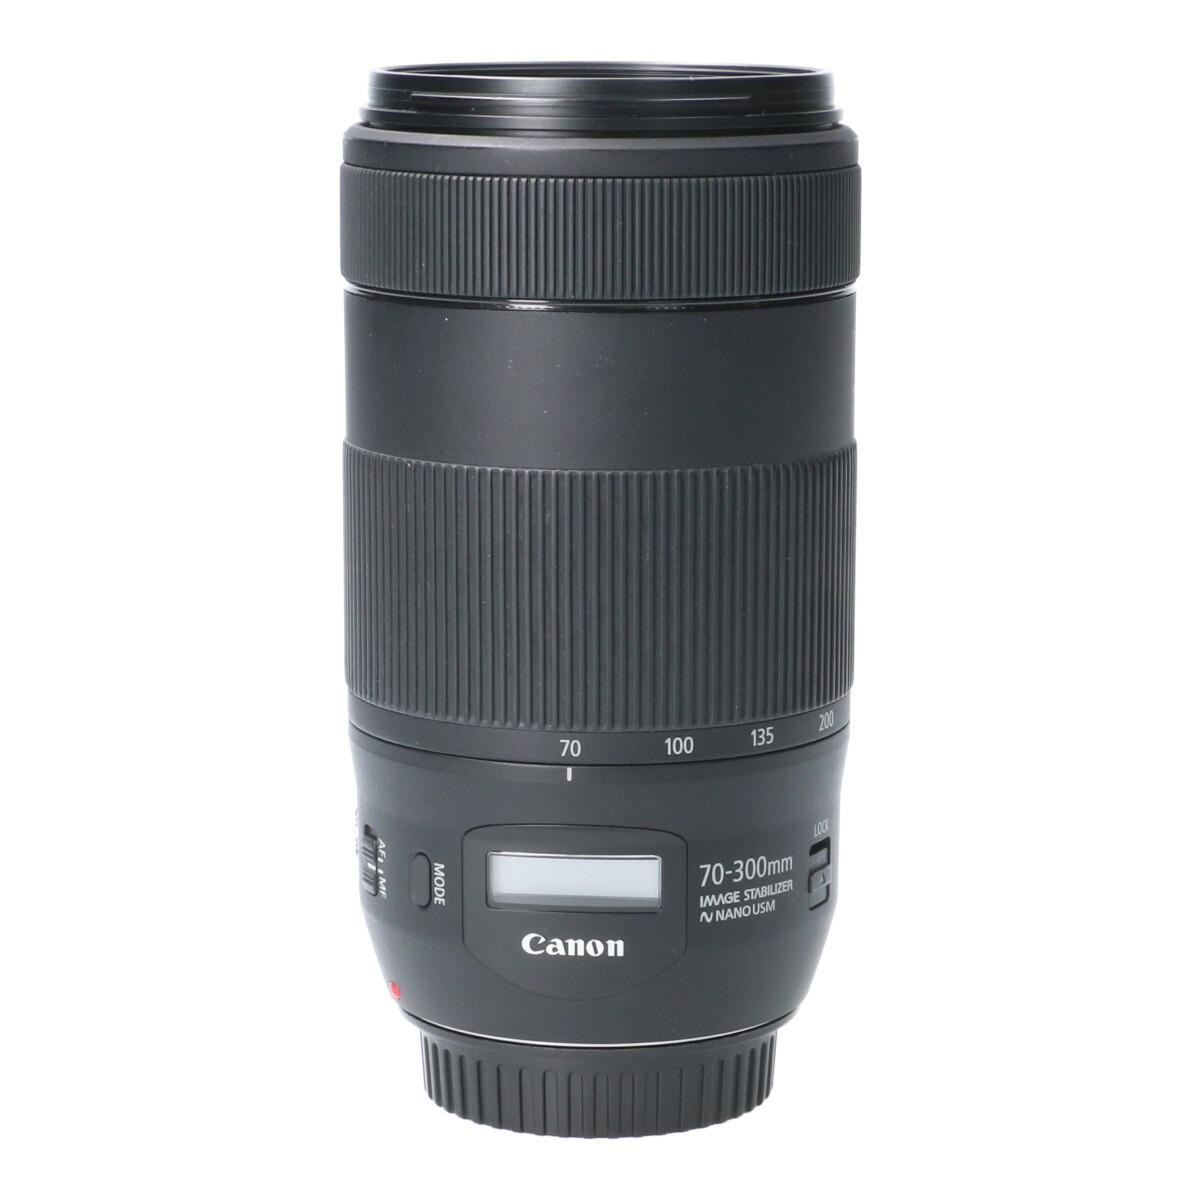 CANON EF70-300mm F4-5.6IS USMII【中古】